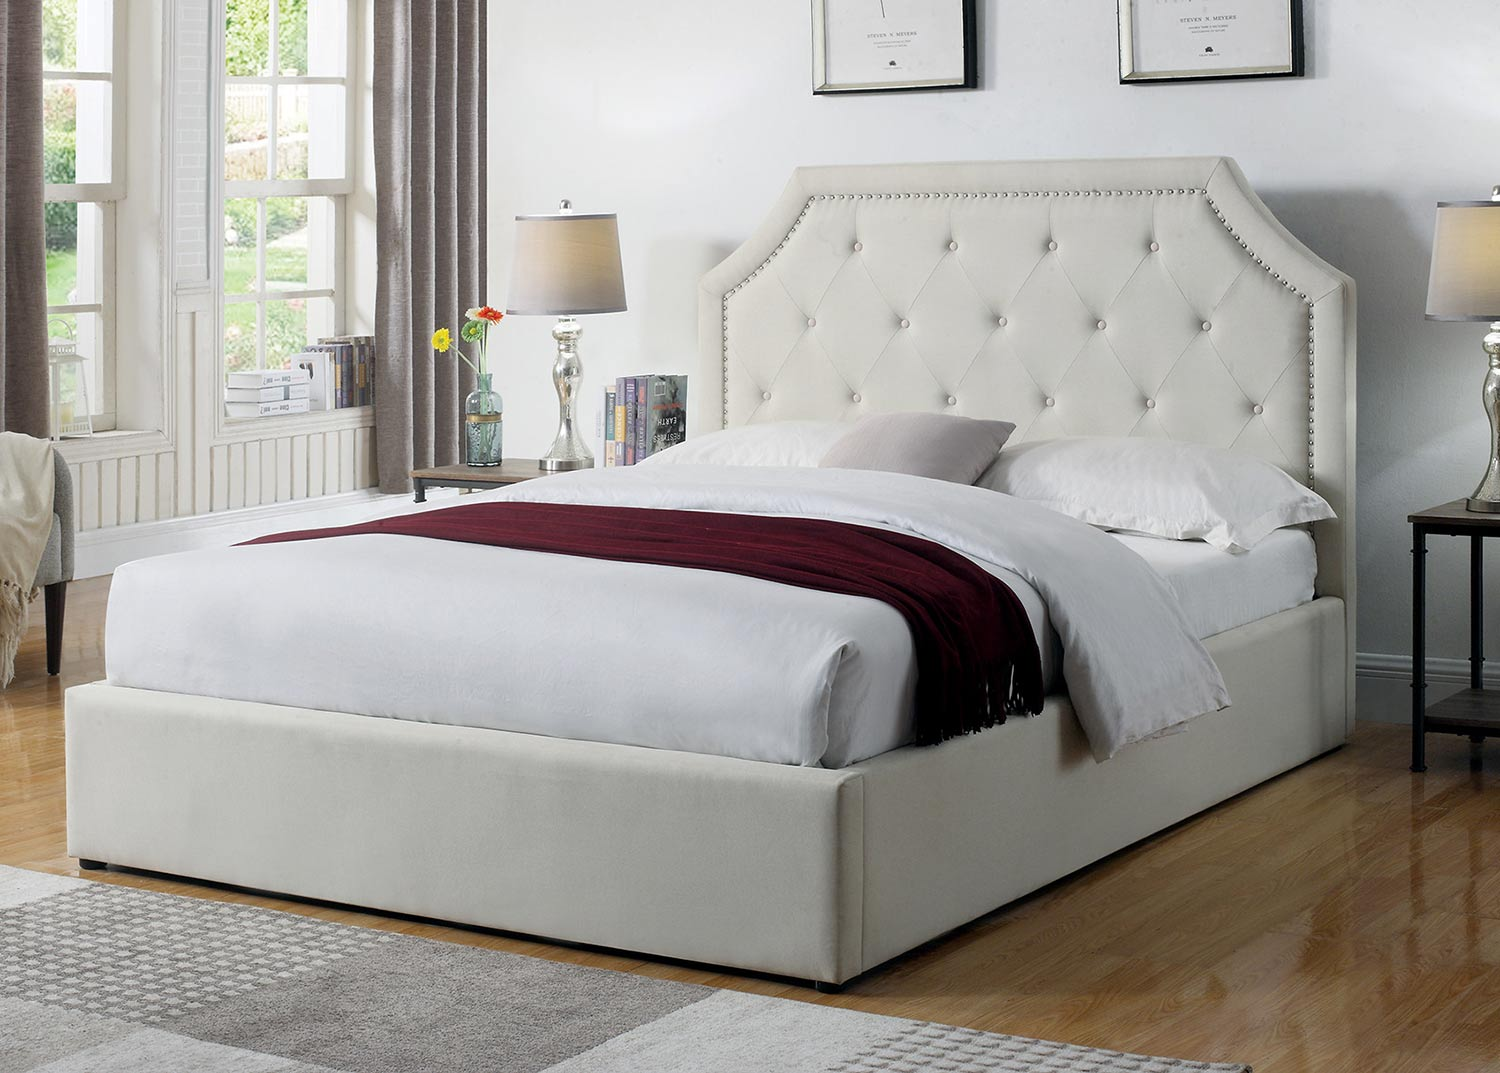 Coaster Hermosa Bed - Beige